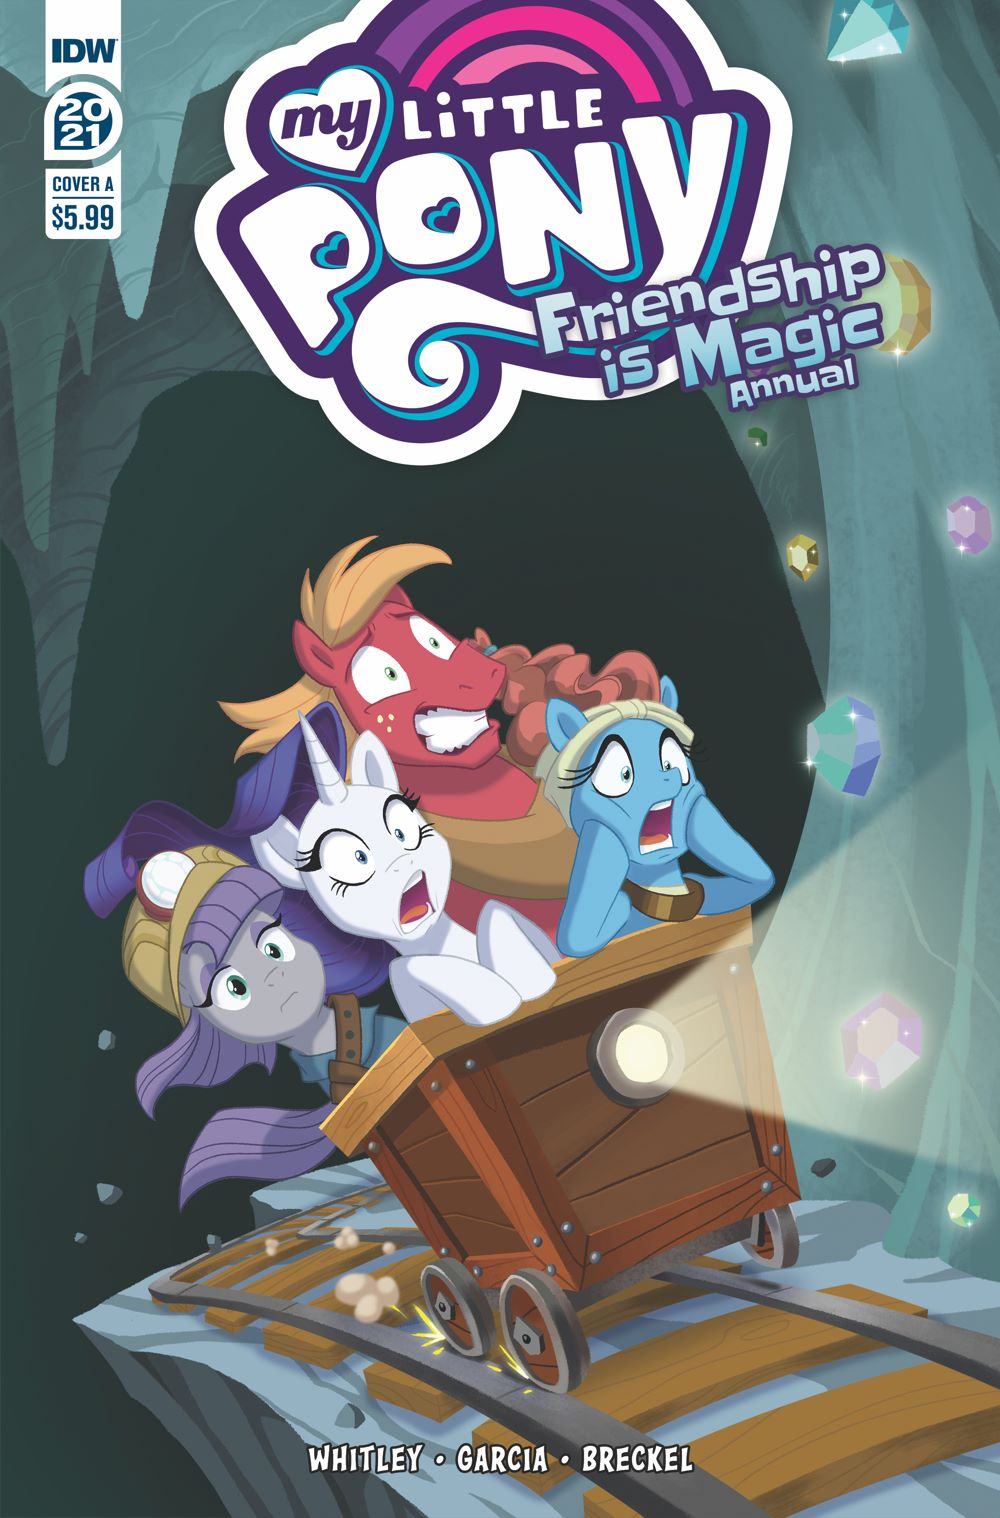 MLP_Annual2021-coverA ComicList Previews: MY LITTLE PONY FRIENDSHIP IS MAGIC 2021 ANNUAL